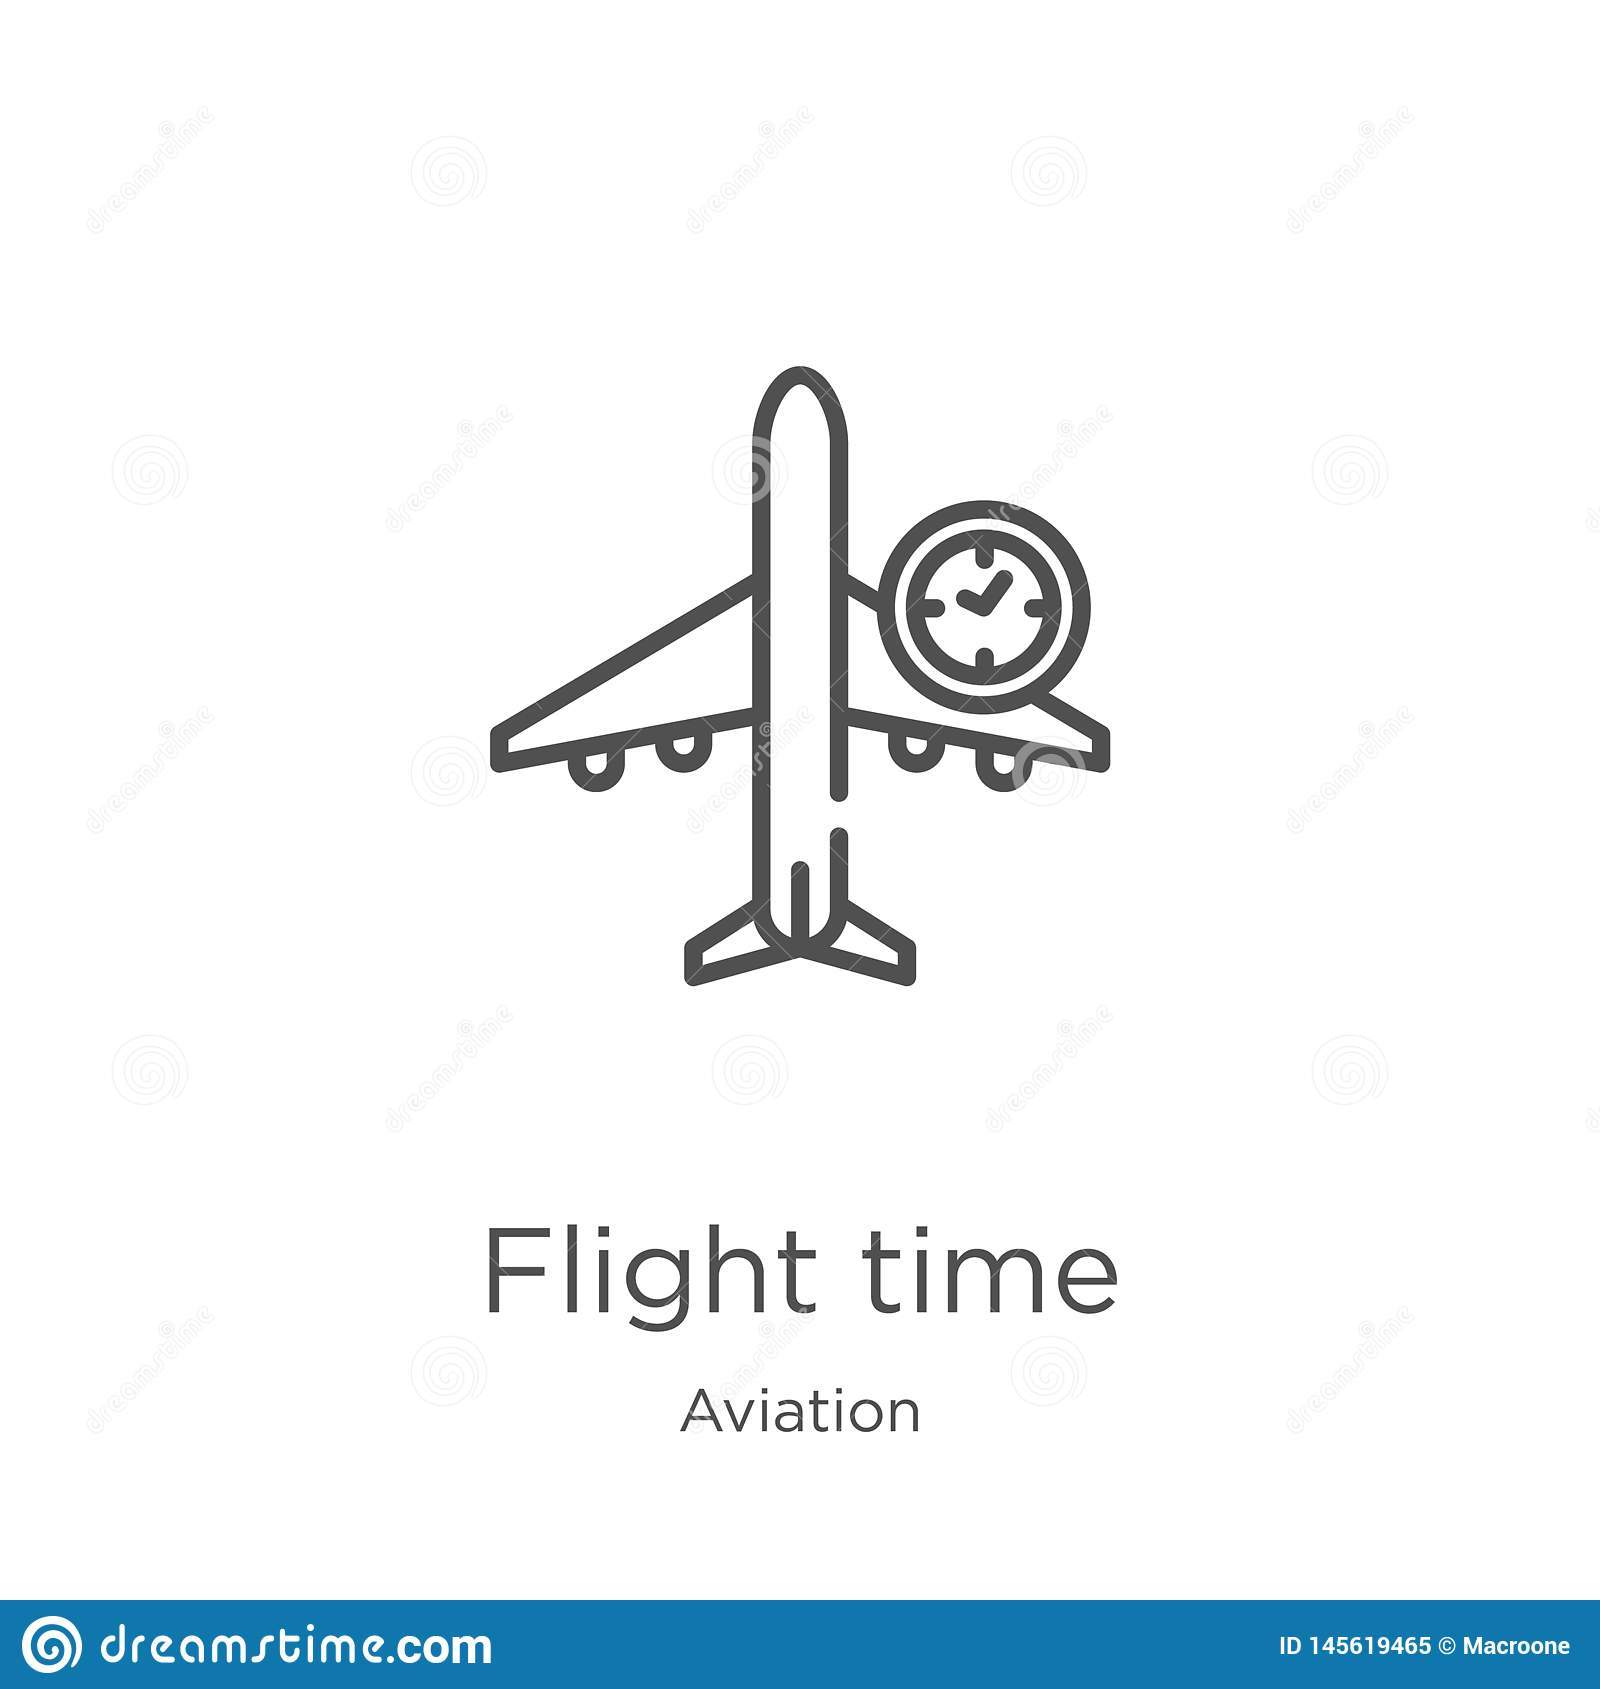 flight time icon vector from aviation collection. Thin line flight time outline icon vector illustration. Outline, thin line